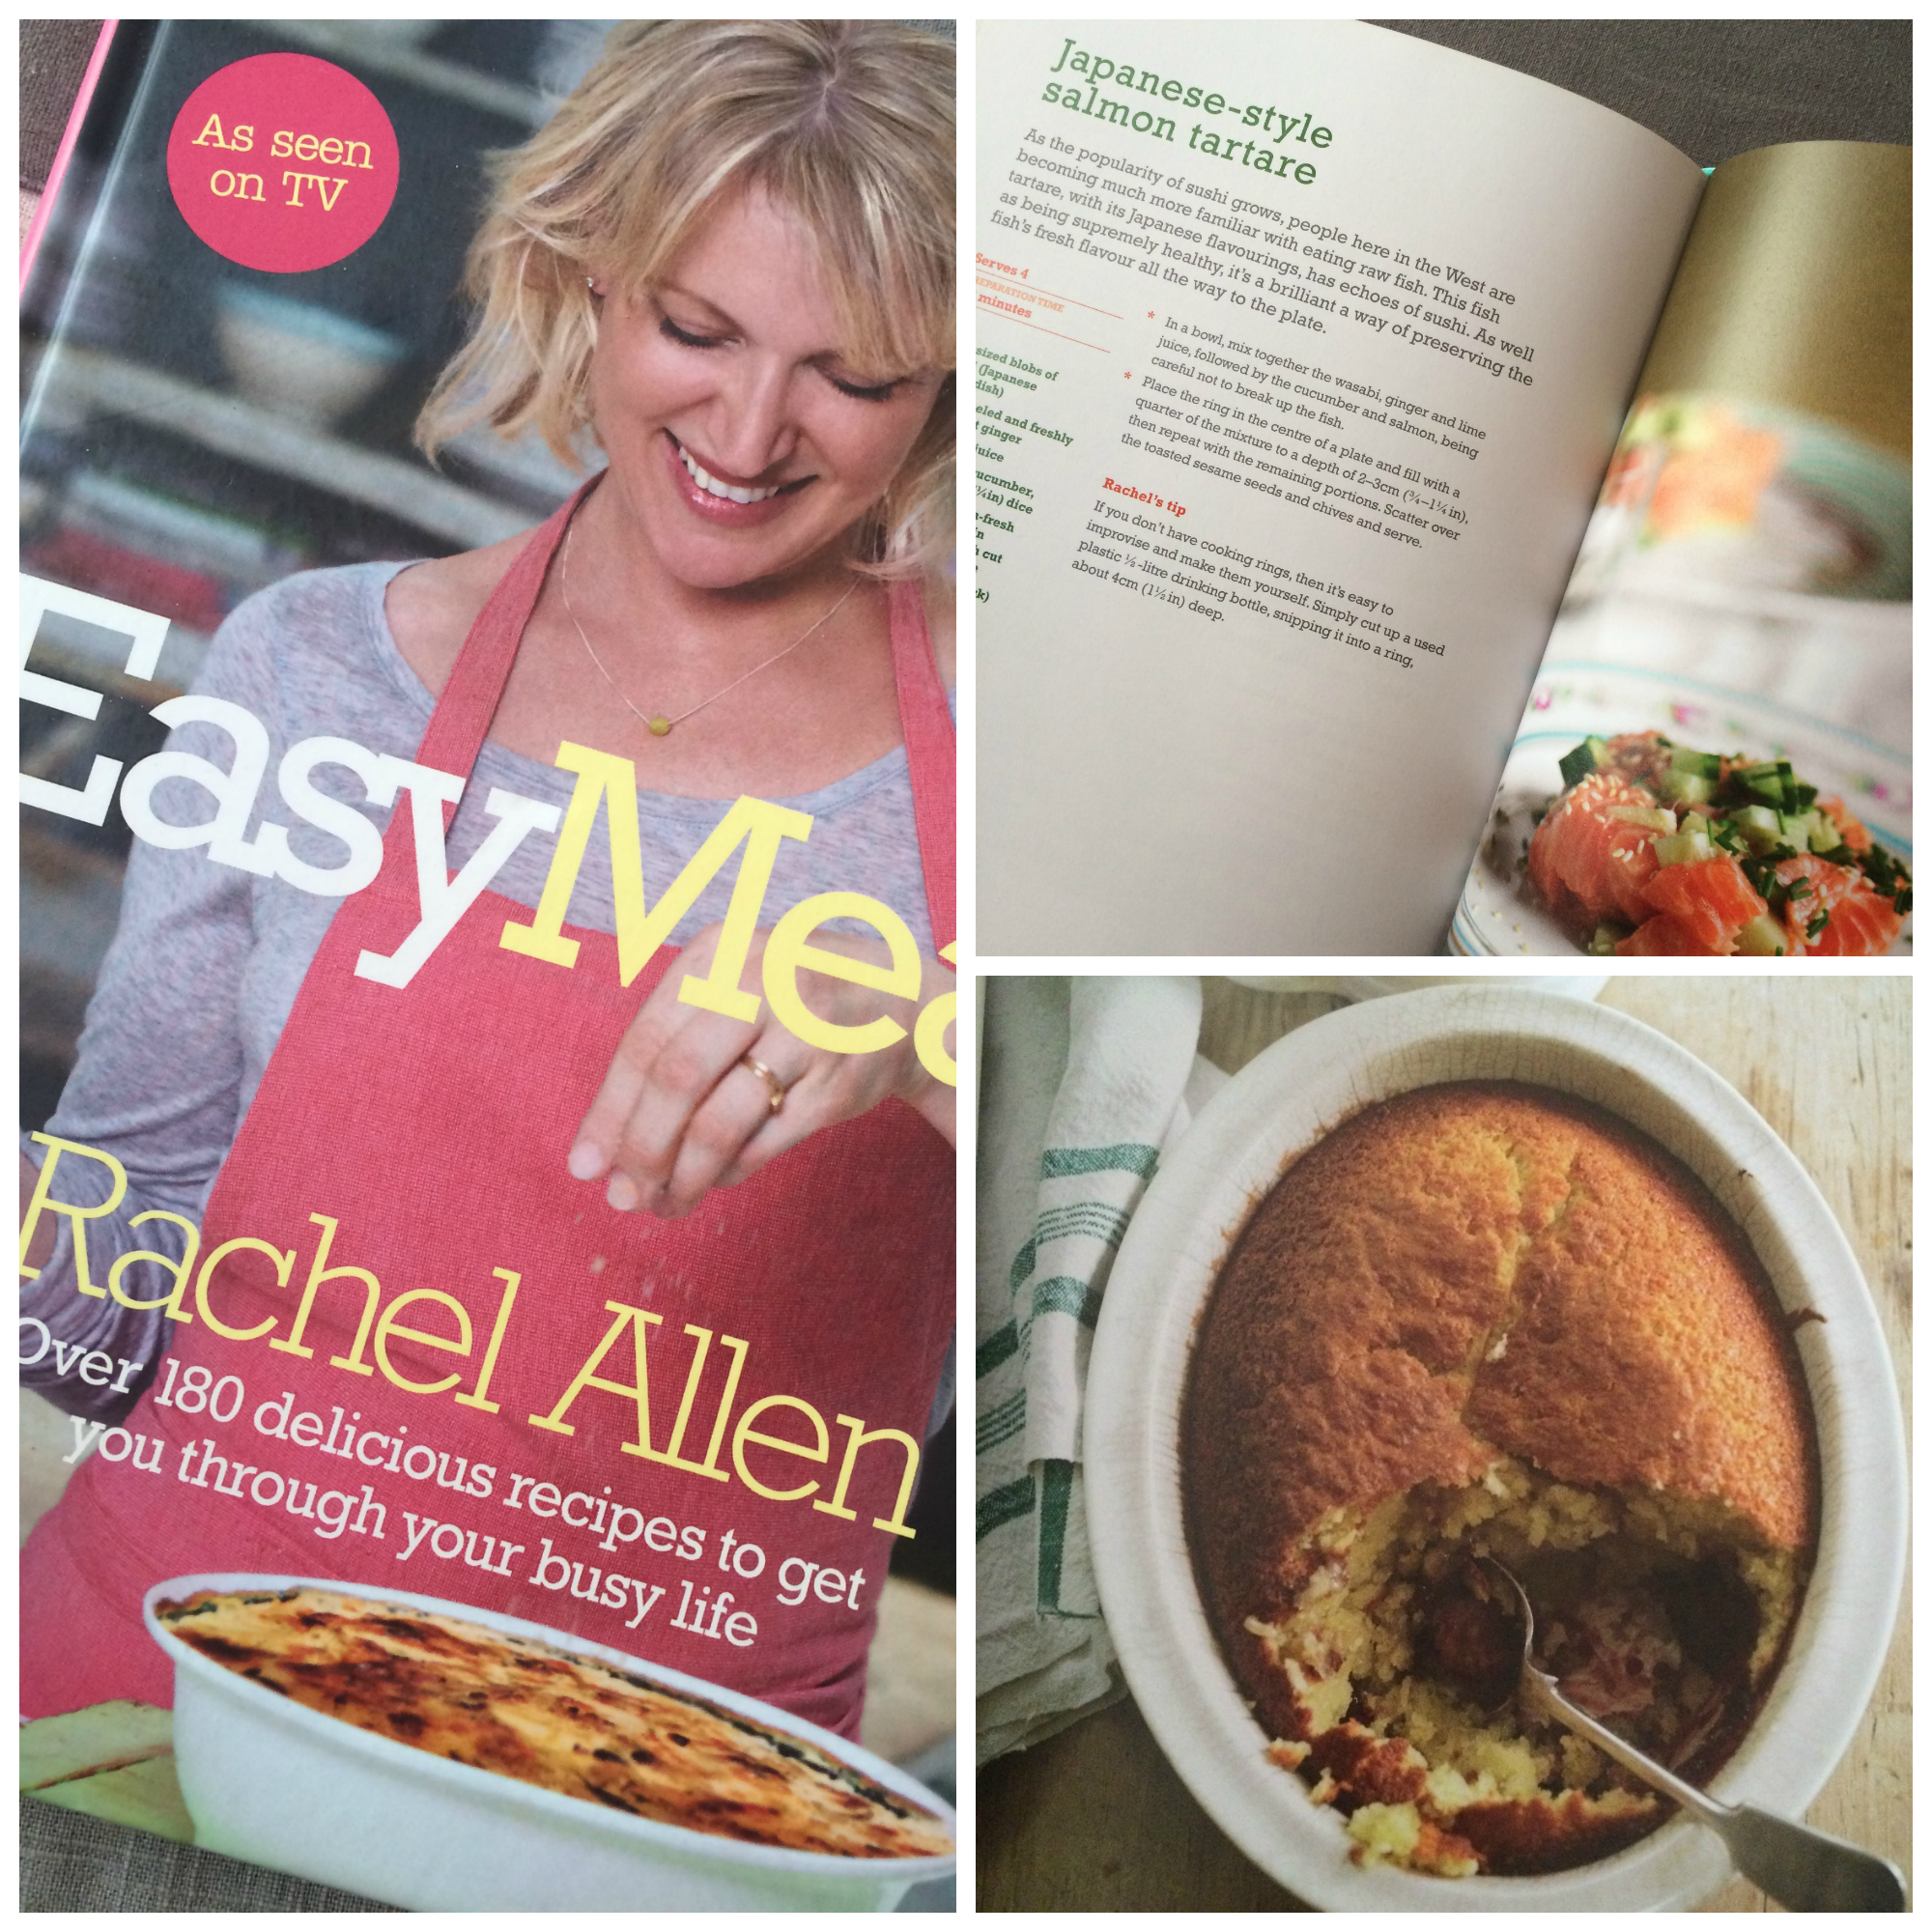 Rachel allen easy food recipes